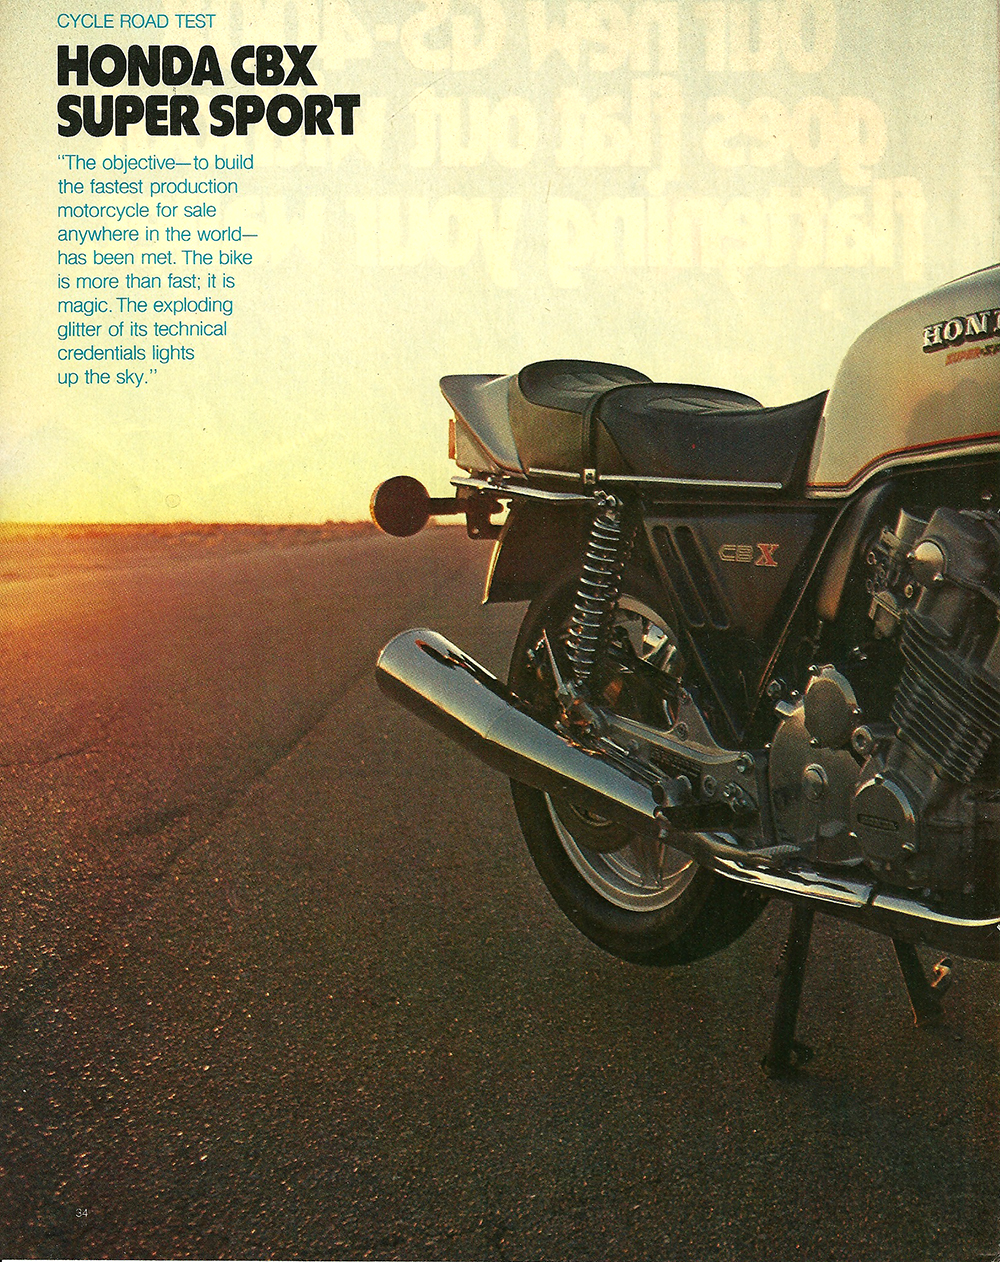 1978 Honda CBX Super Sport road test 01.jpg